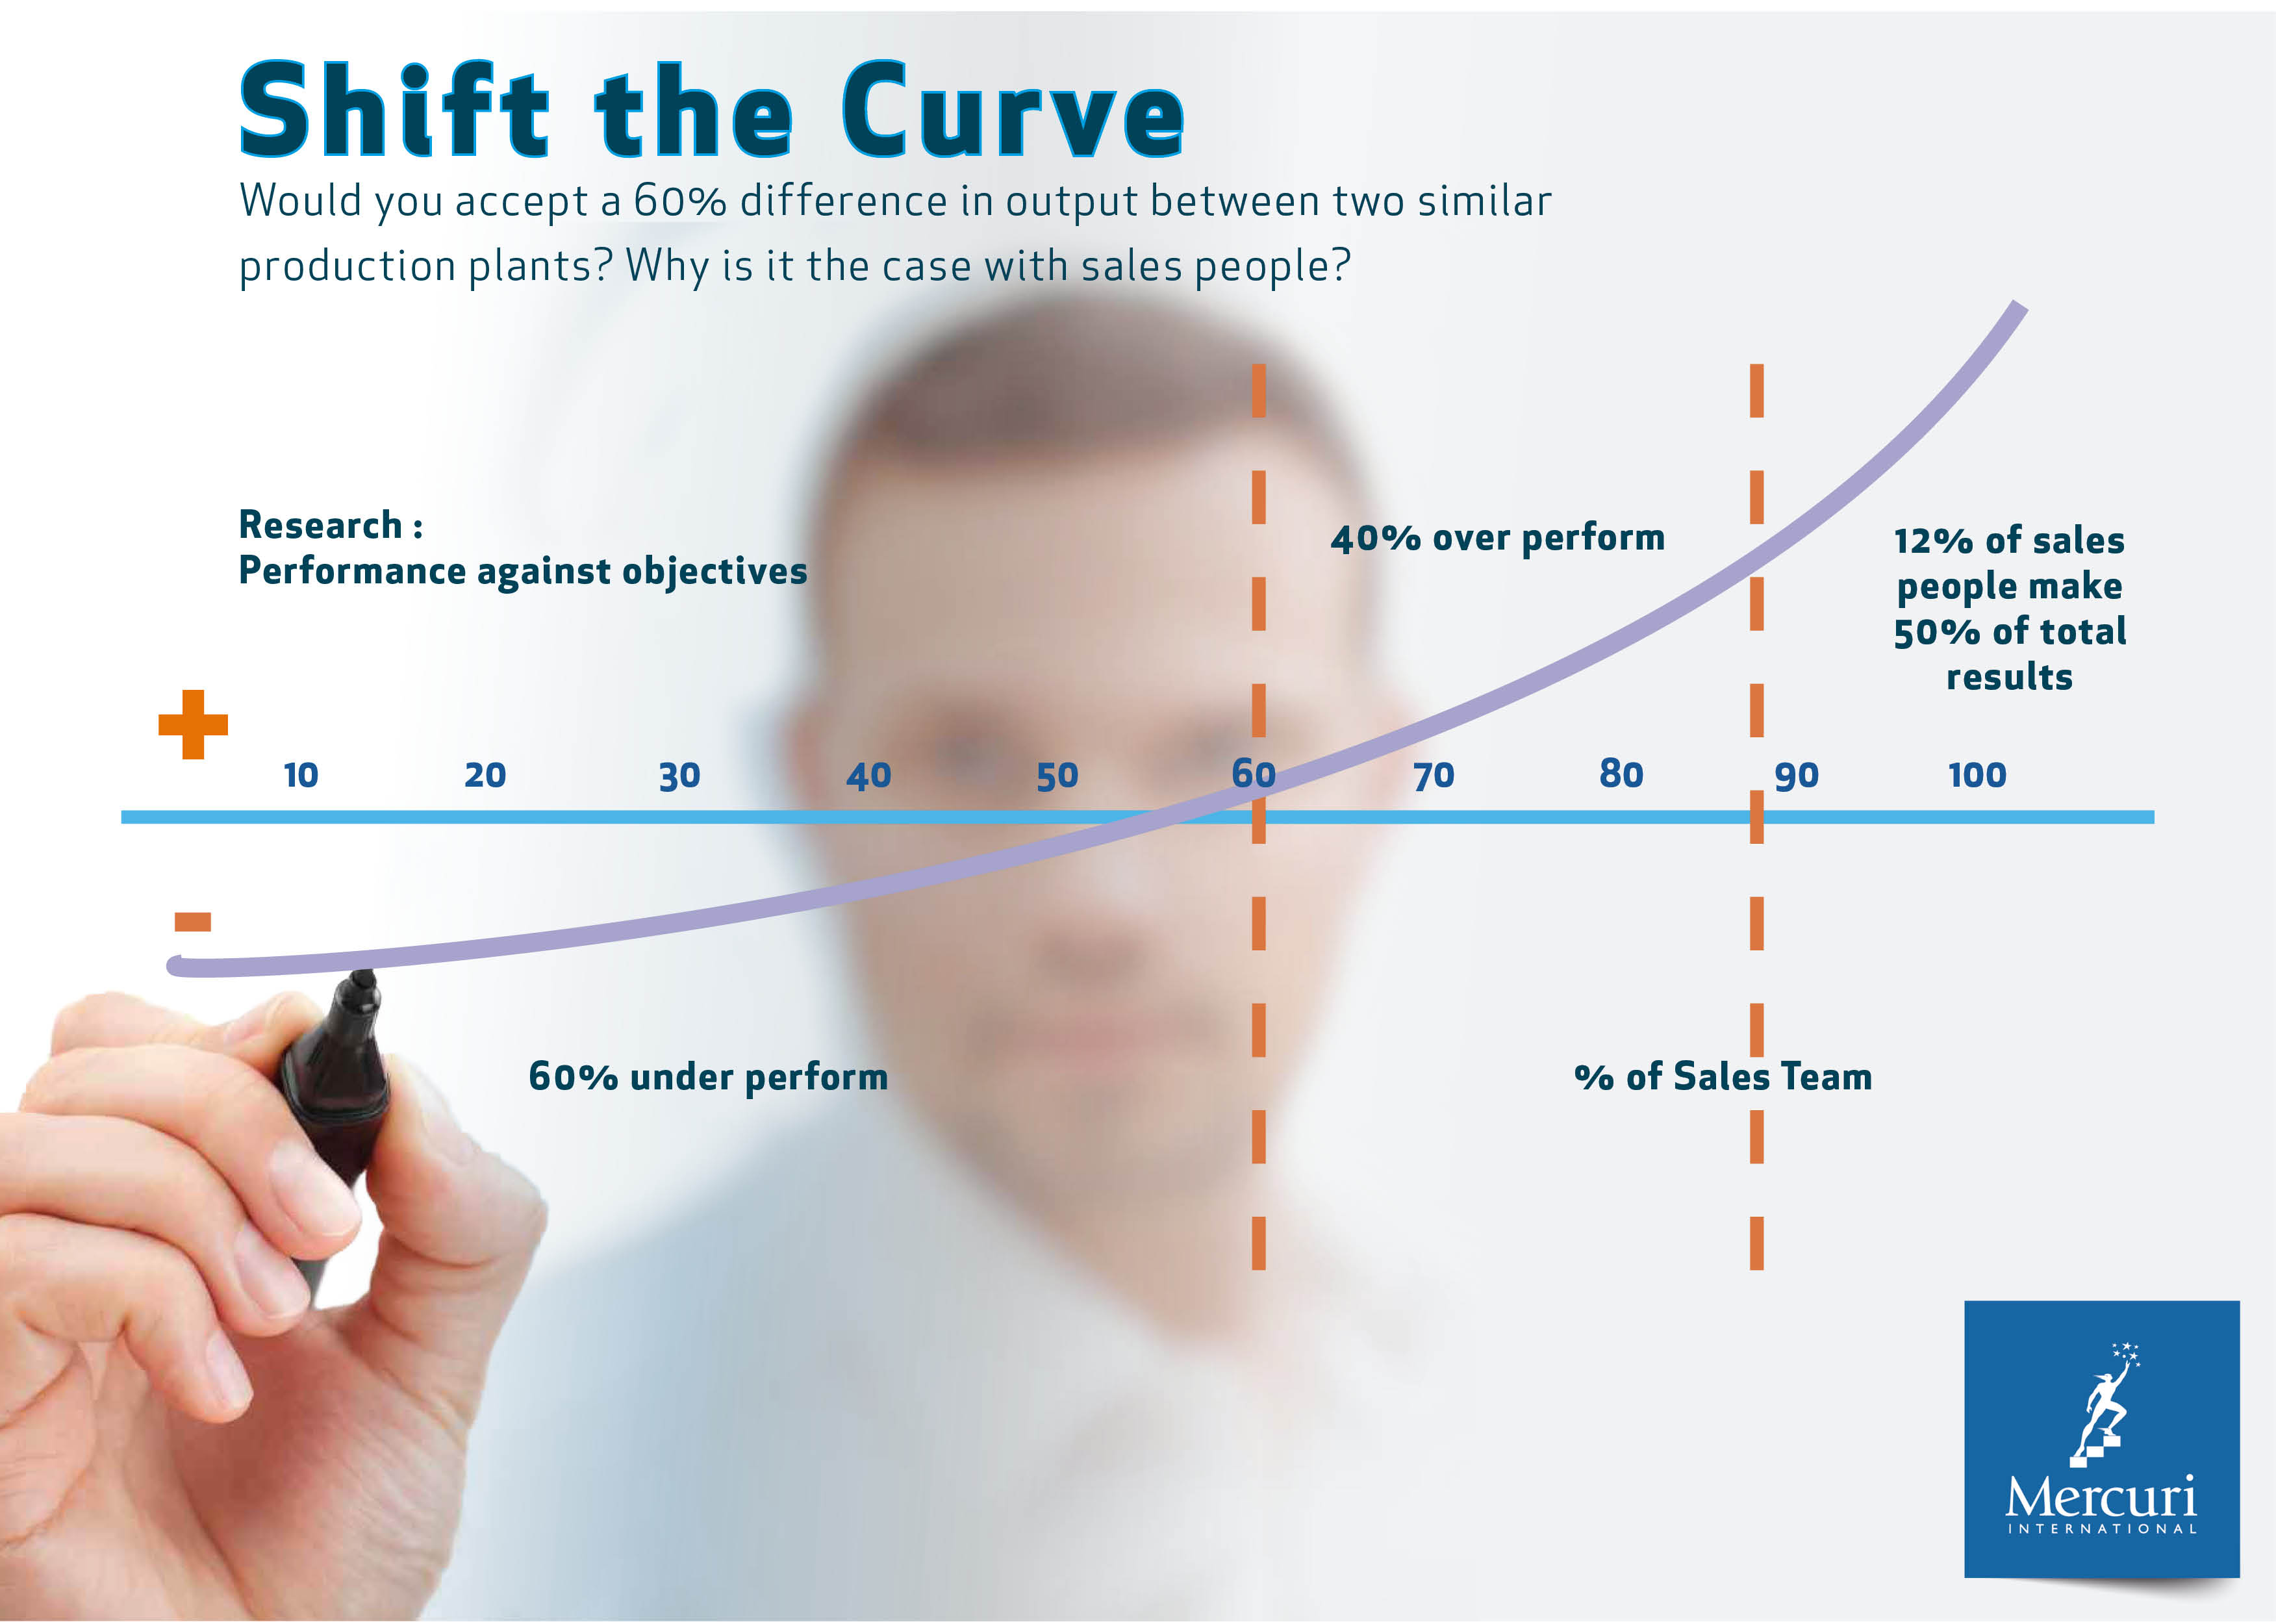 Shift the Curve